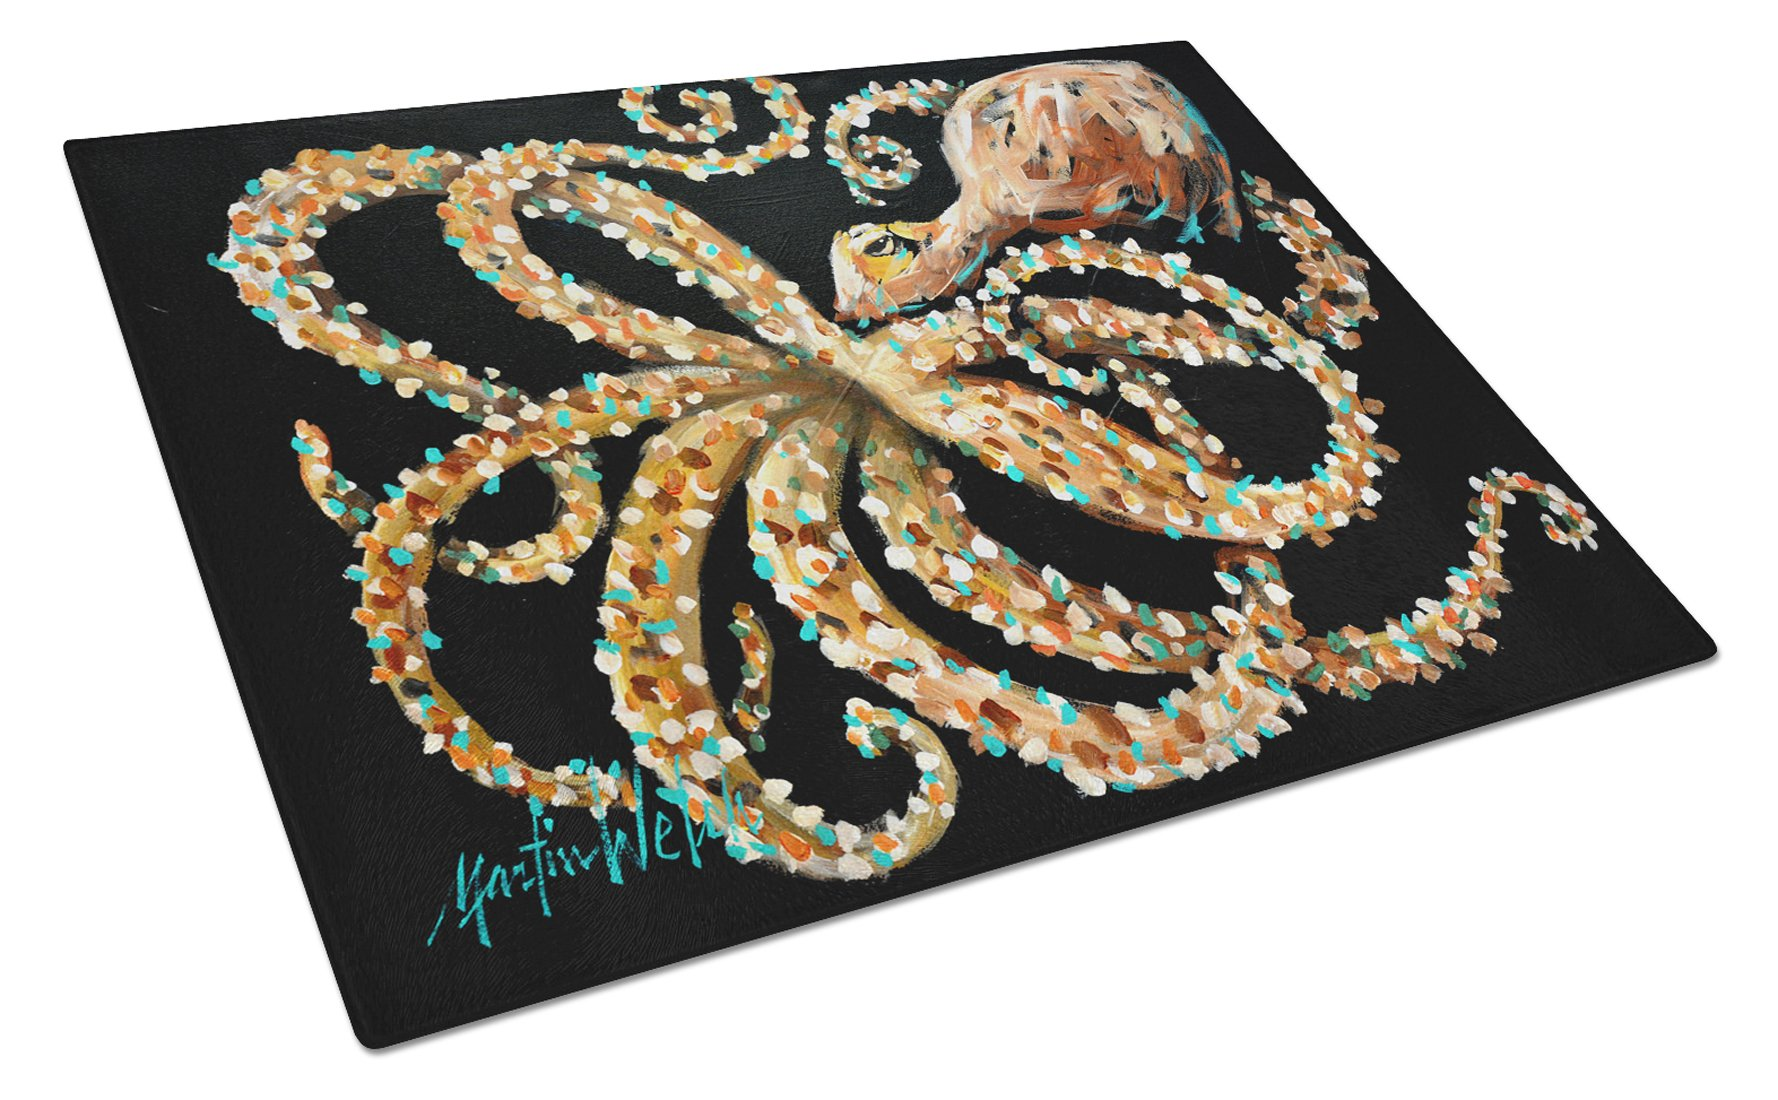 Eye On You Octopus Glass Cutting Board Large MW1275LCB by Caroline's Treasures